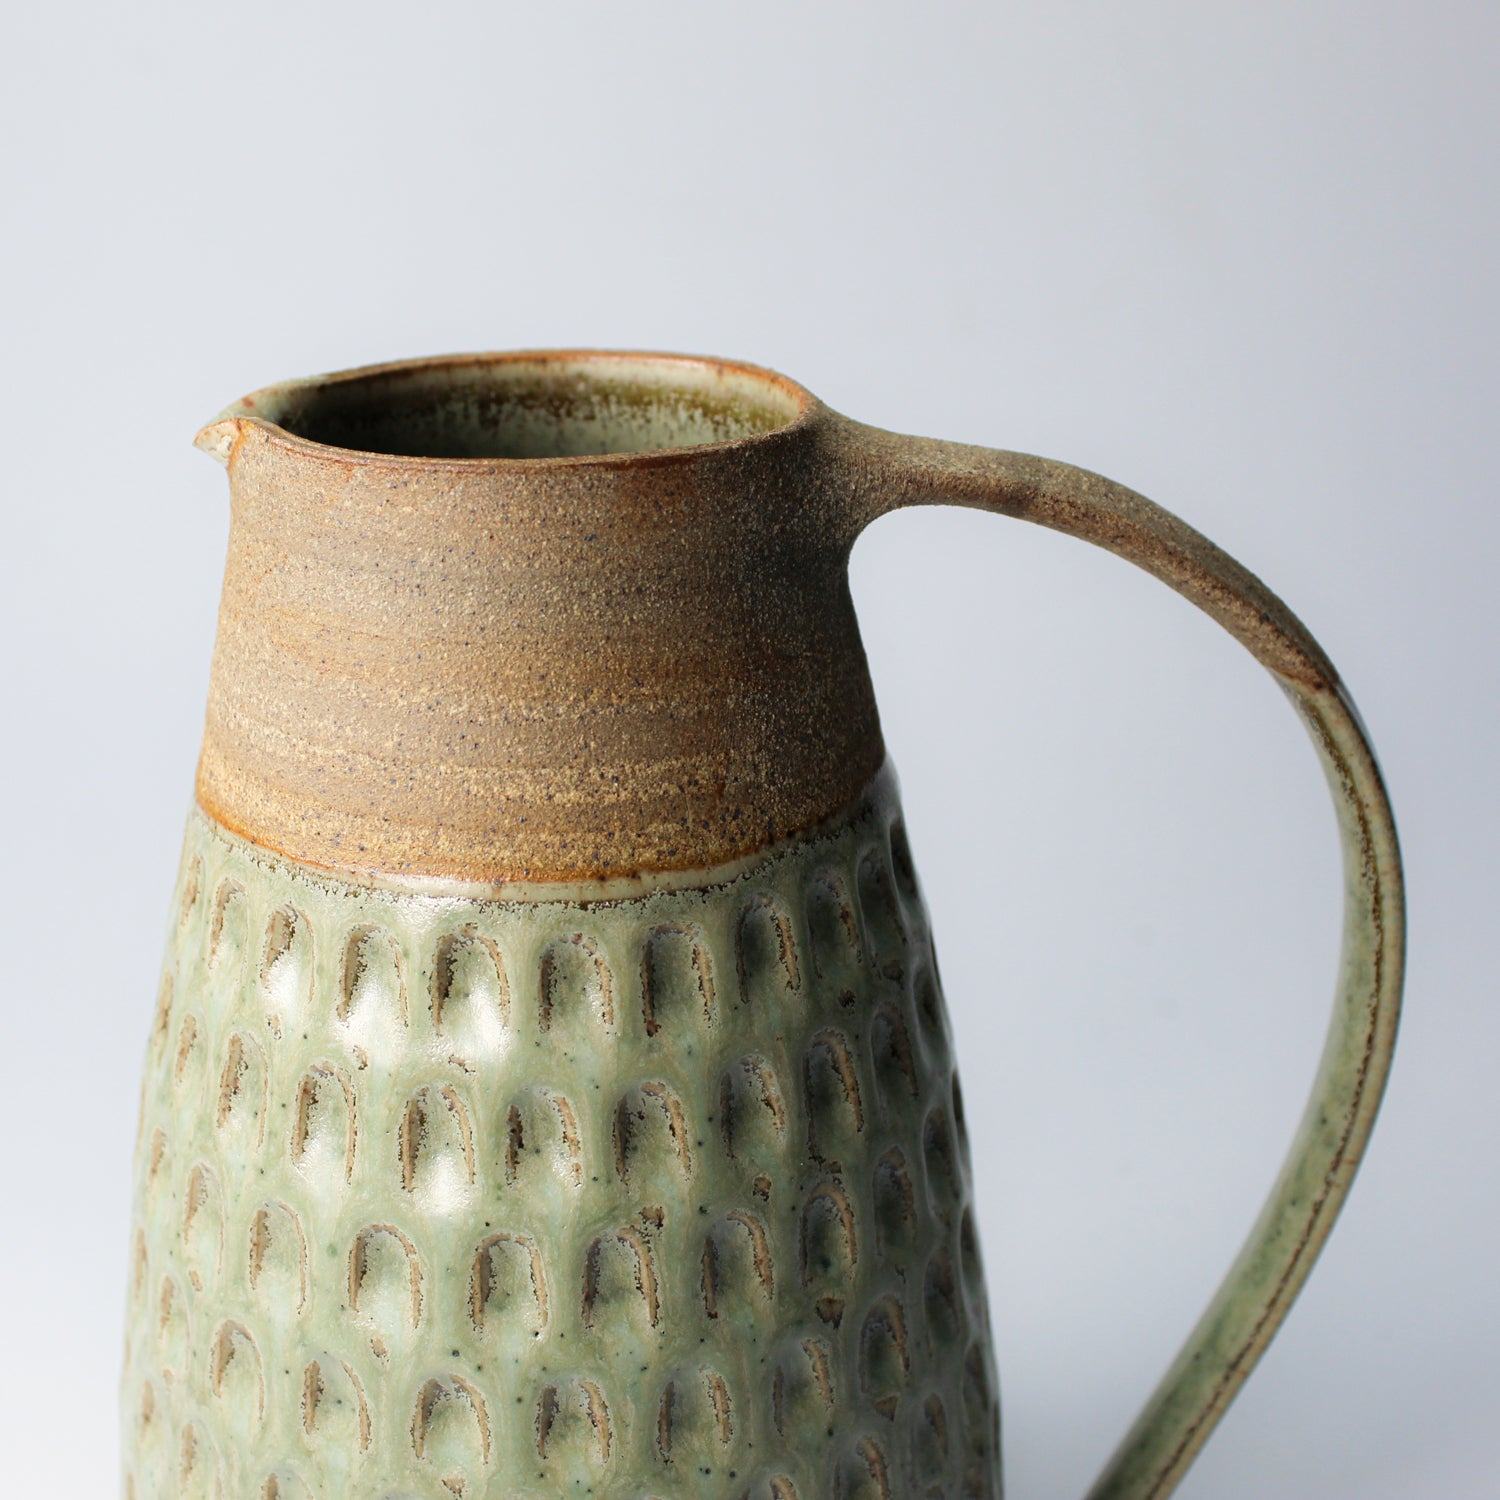 Top detail of stoneware jug with large handle. Top of jug has brown stripe